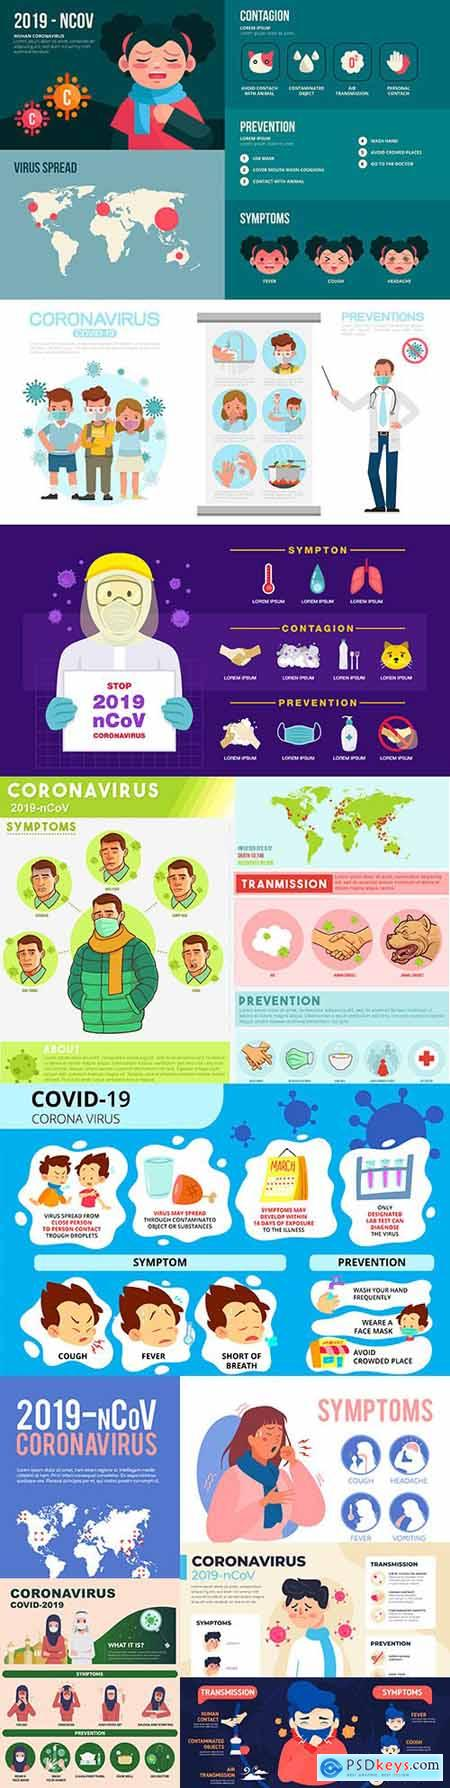 Coronavirus infographic symptoms and prevention design 6